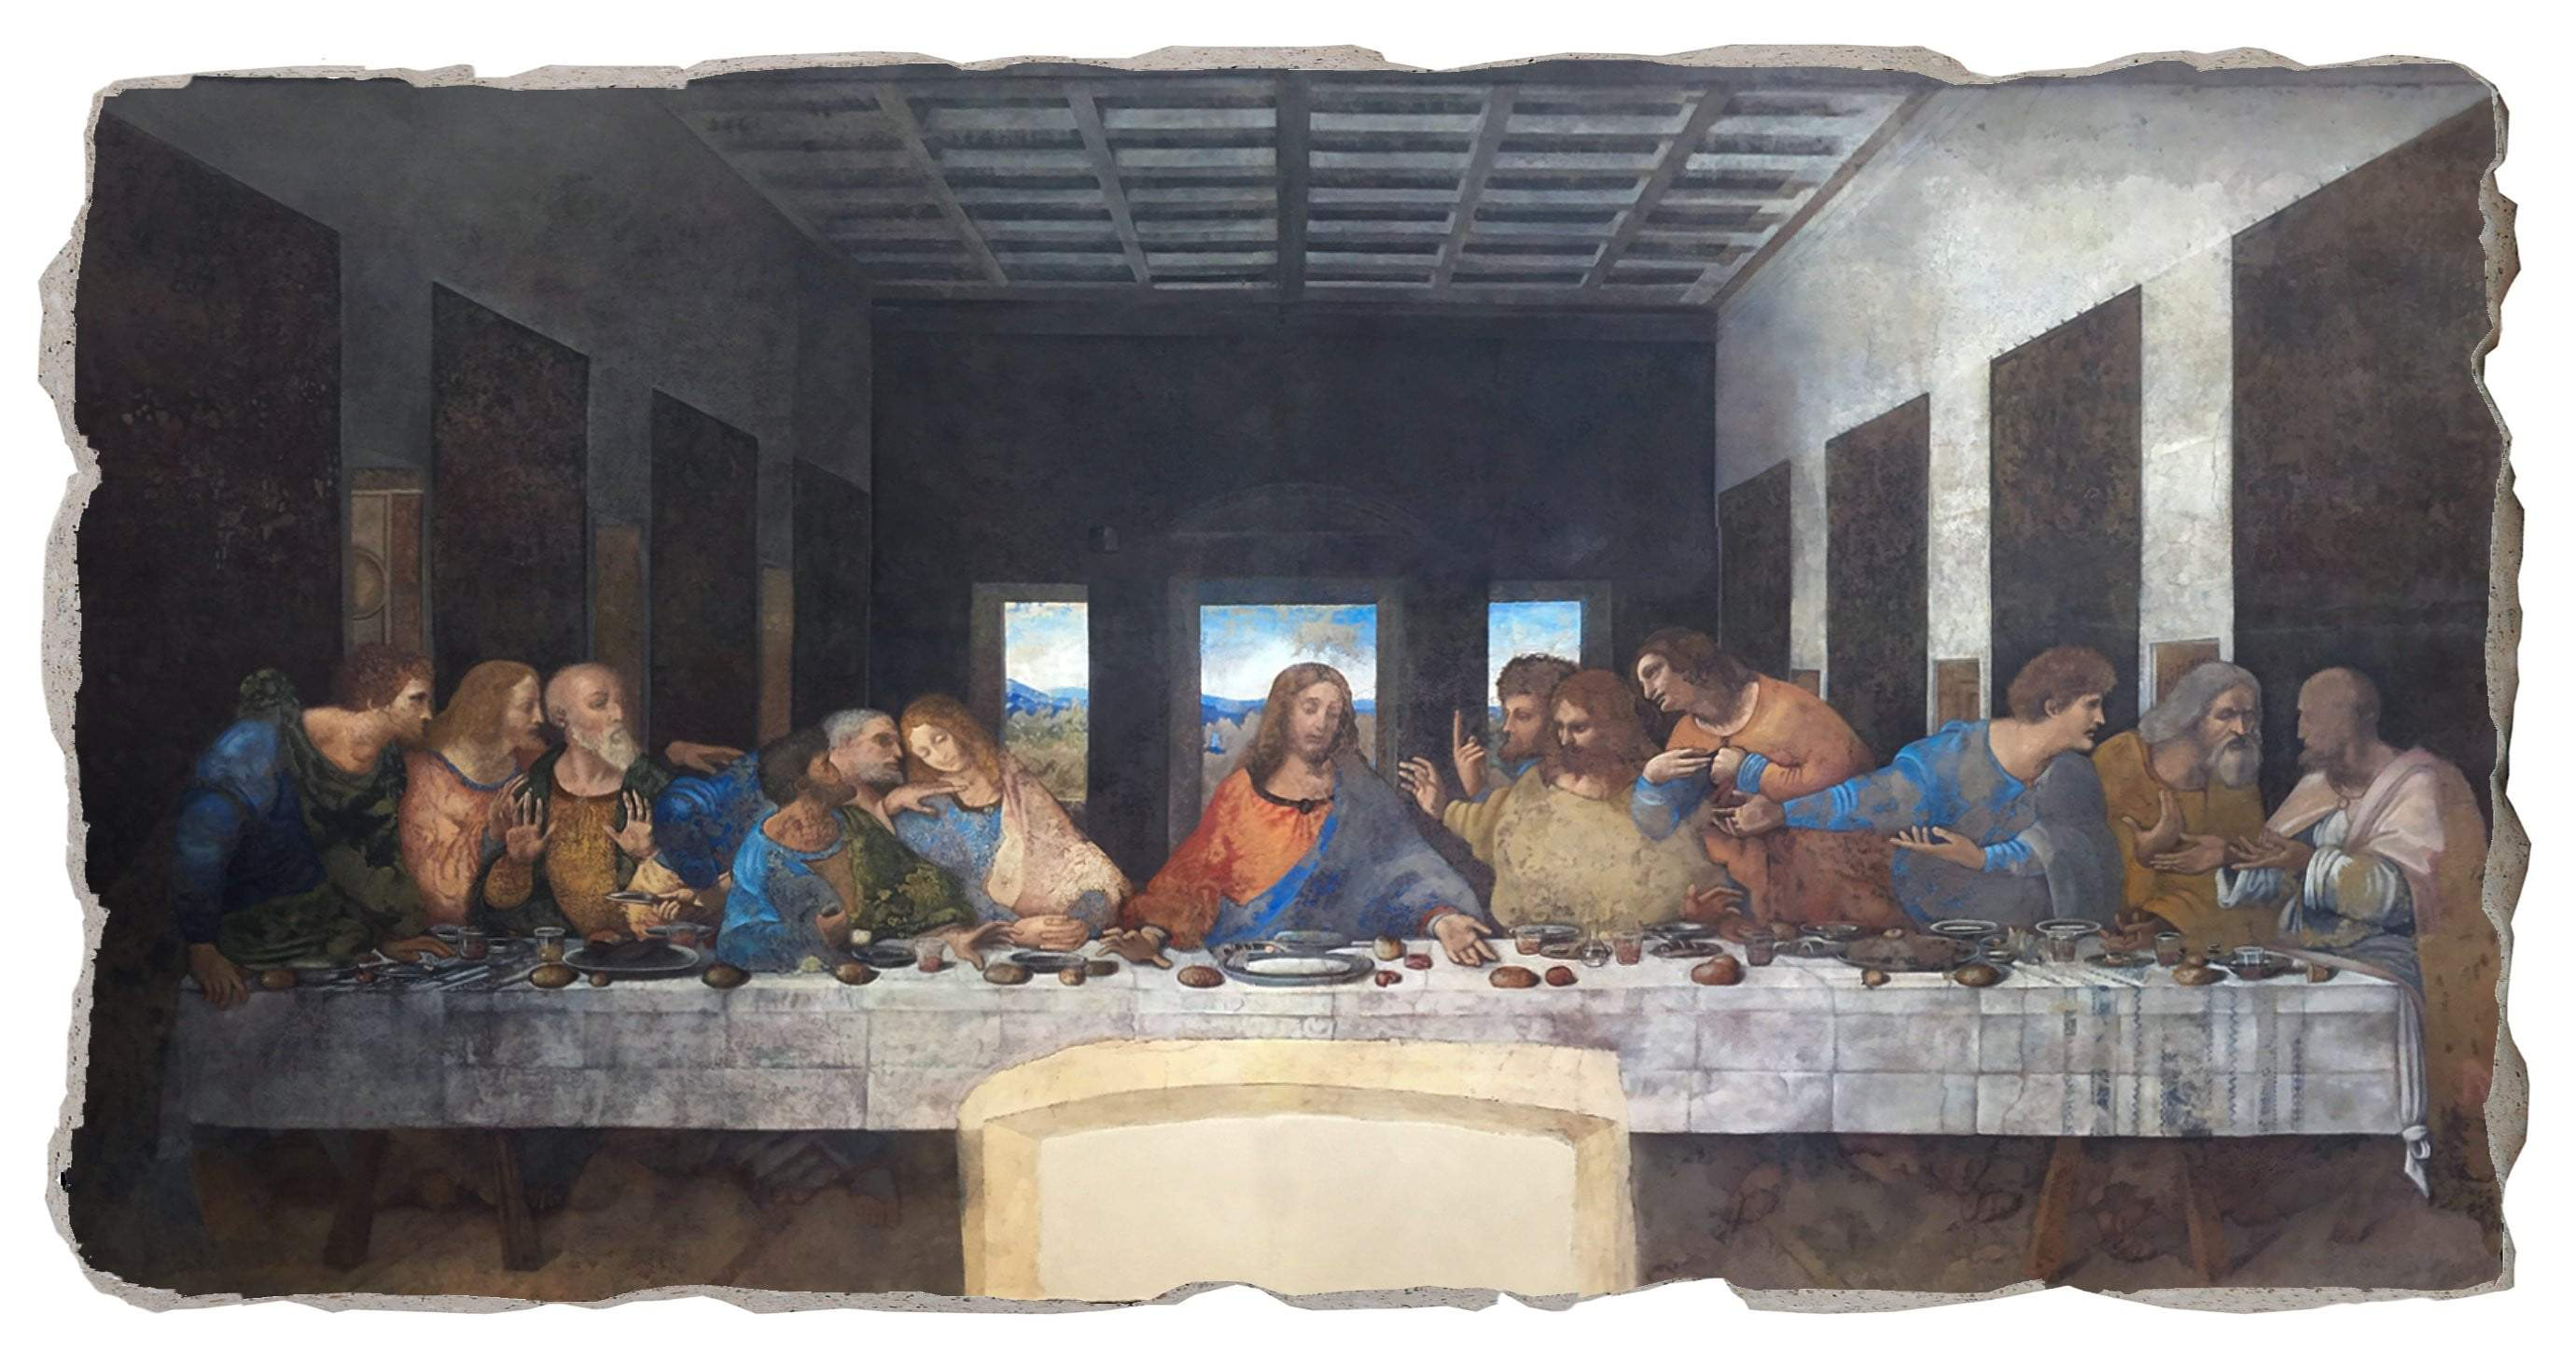 Site Navigation Leonardo Da Vinci Experience Roma Home Museum Tickets Contacts Souvenirs Search Cart Cart Your Cart Close Cart Ultima Cena The Last Supper Leonardo Da Vinci Experience Roma The Last Supper Regular Price Sale Price 35